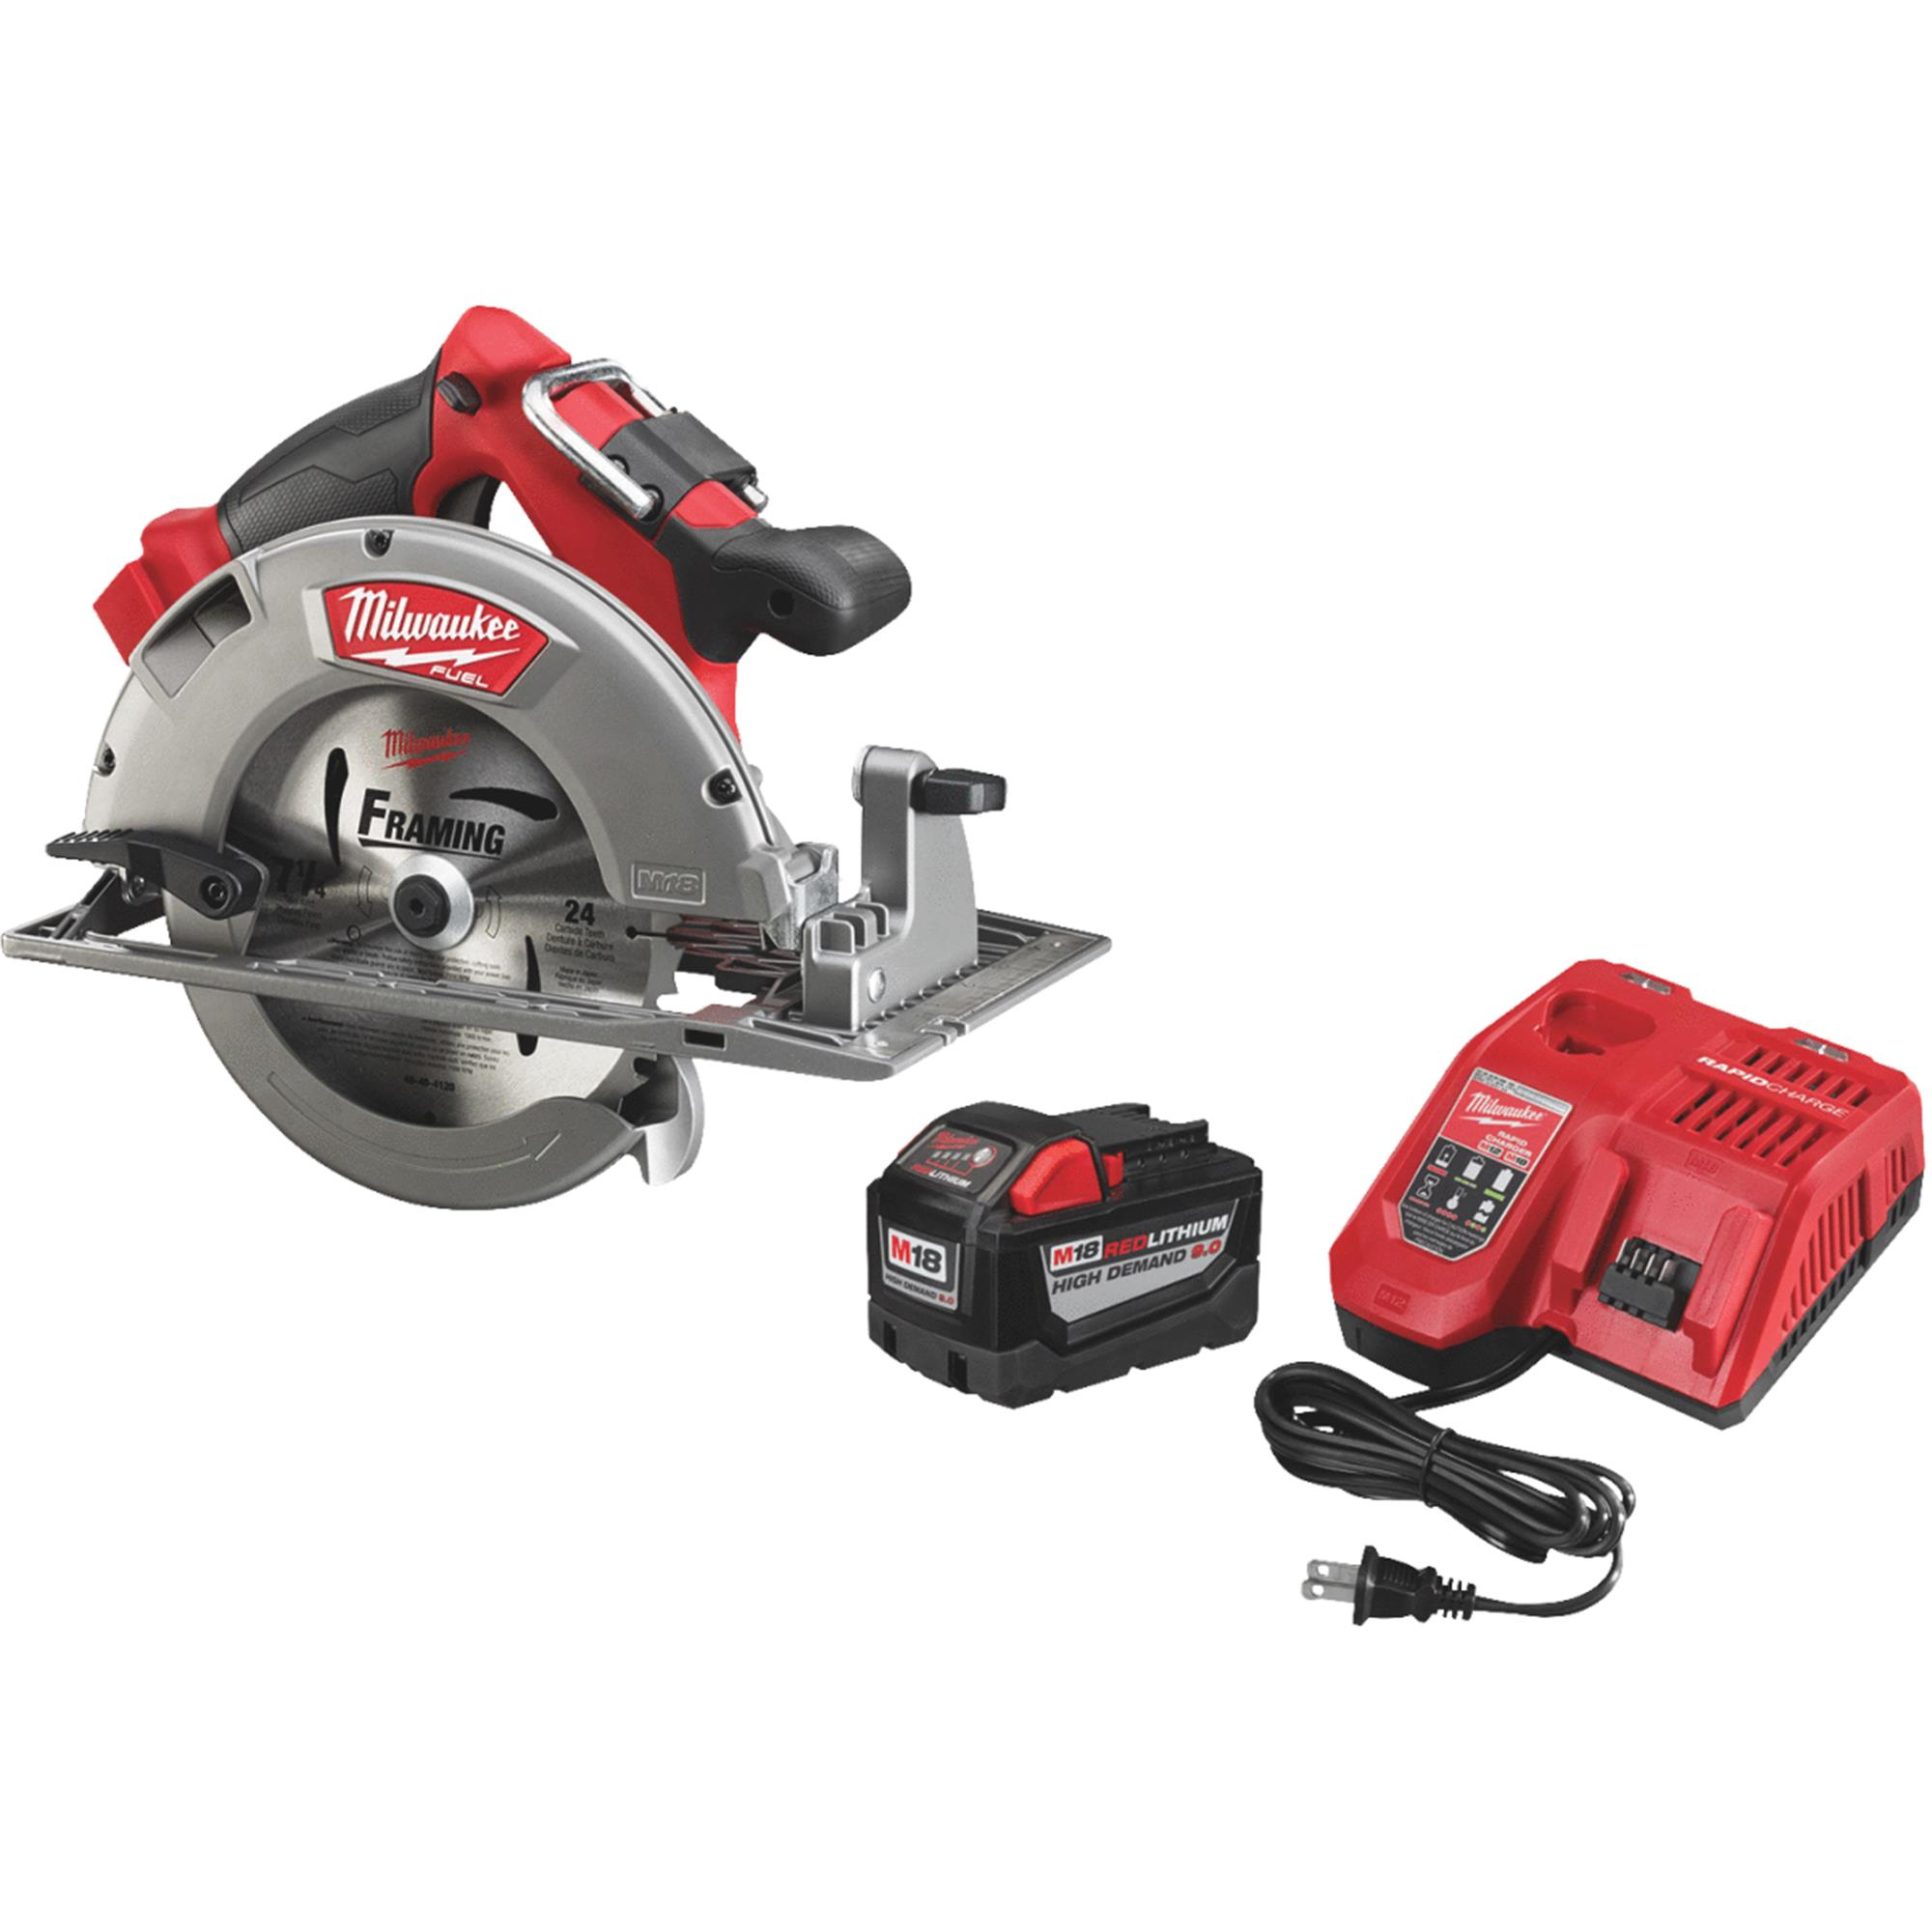 Milwaukee M18 FUEL Lithium-Ion Brushless HD Cordless Circular Saw Kit